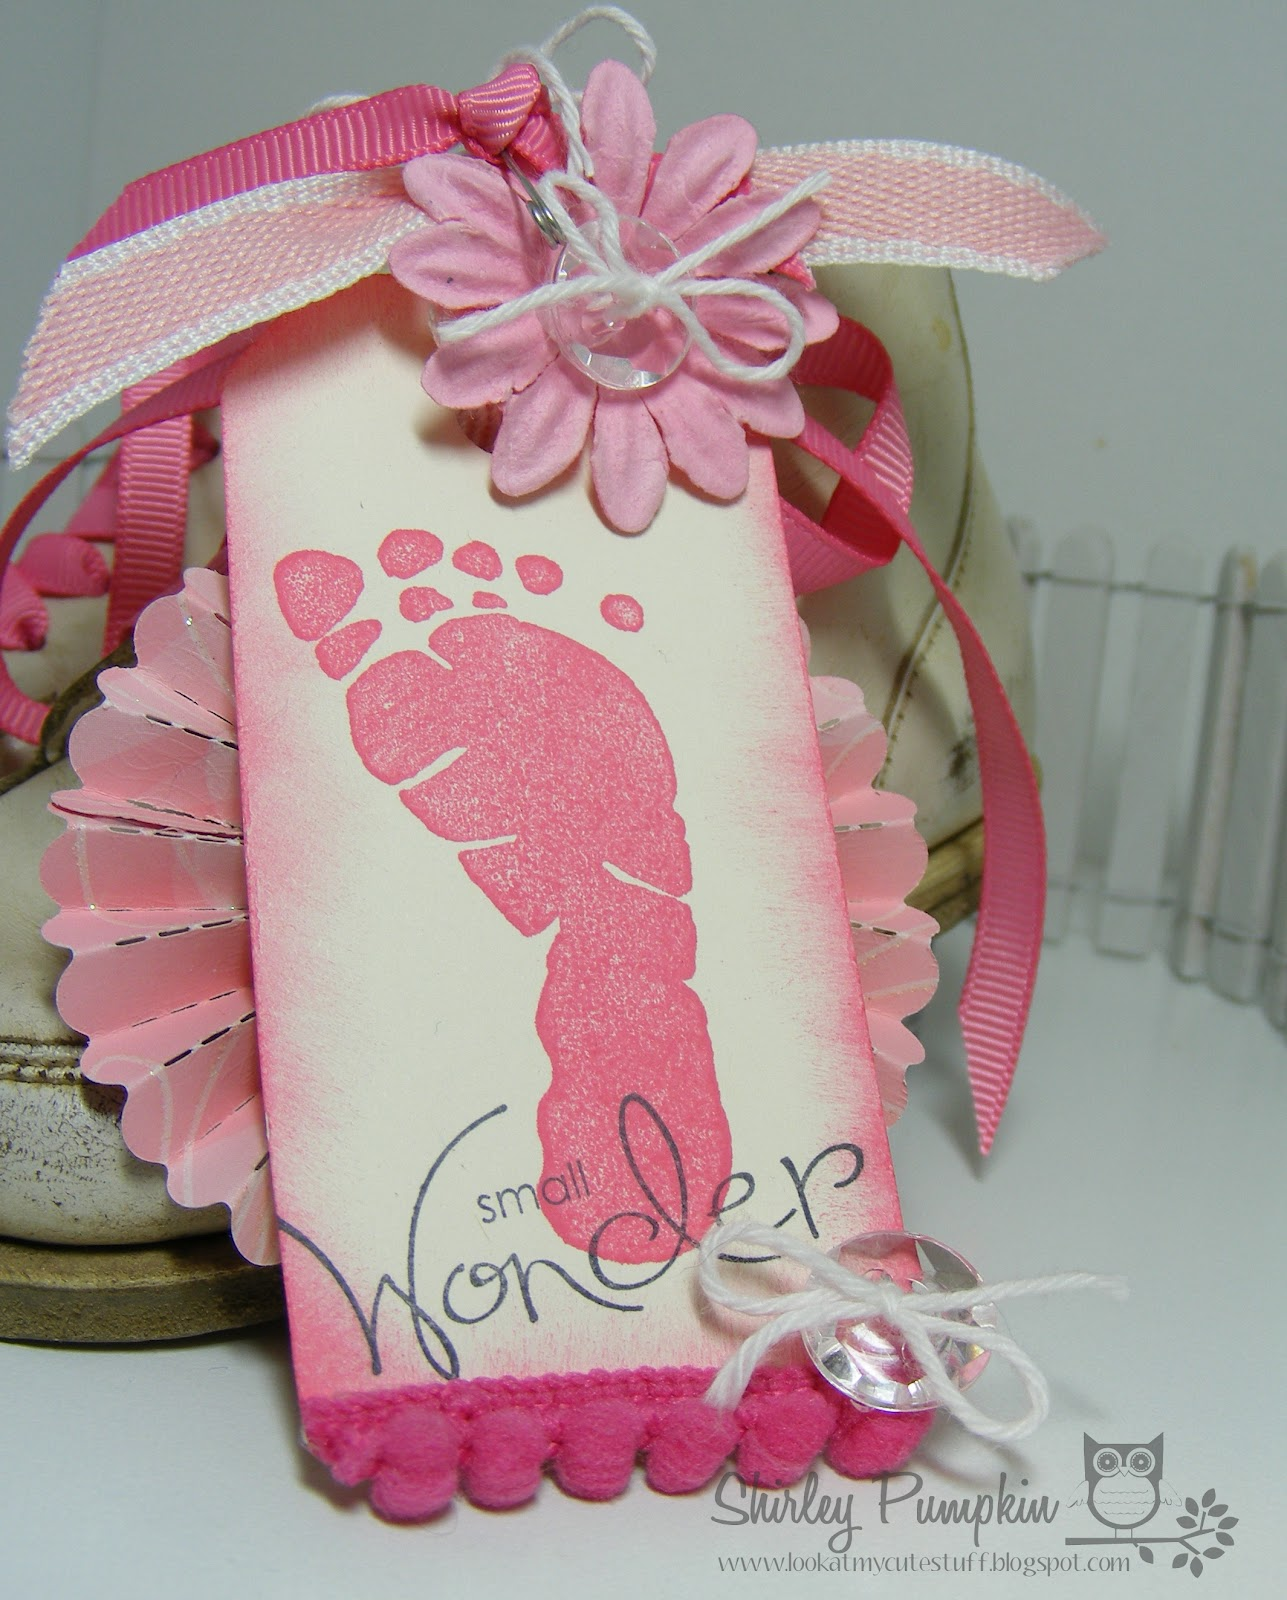 Cute stuff by Shirley: Vintage Baby Shoes with Girly Tag Great